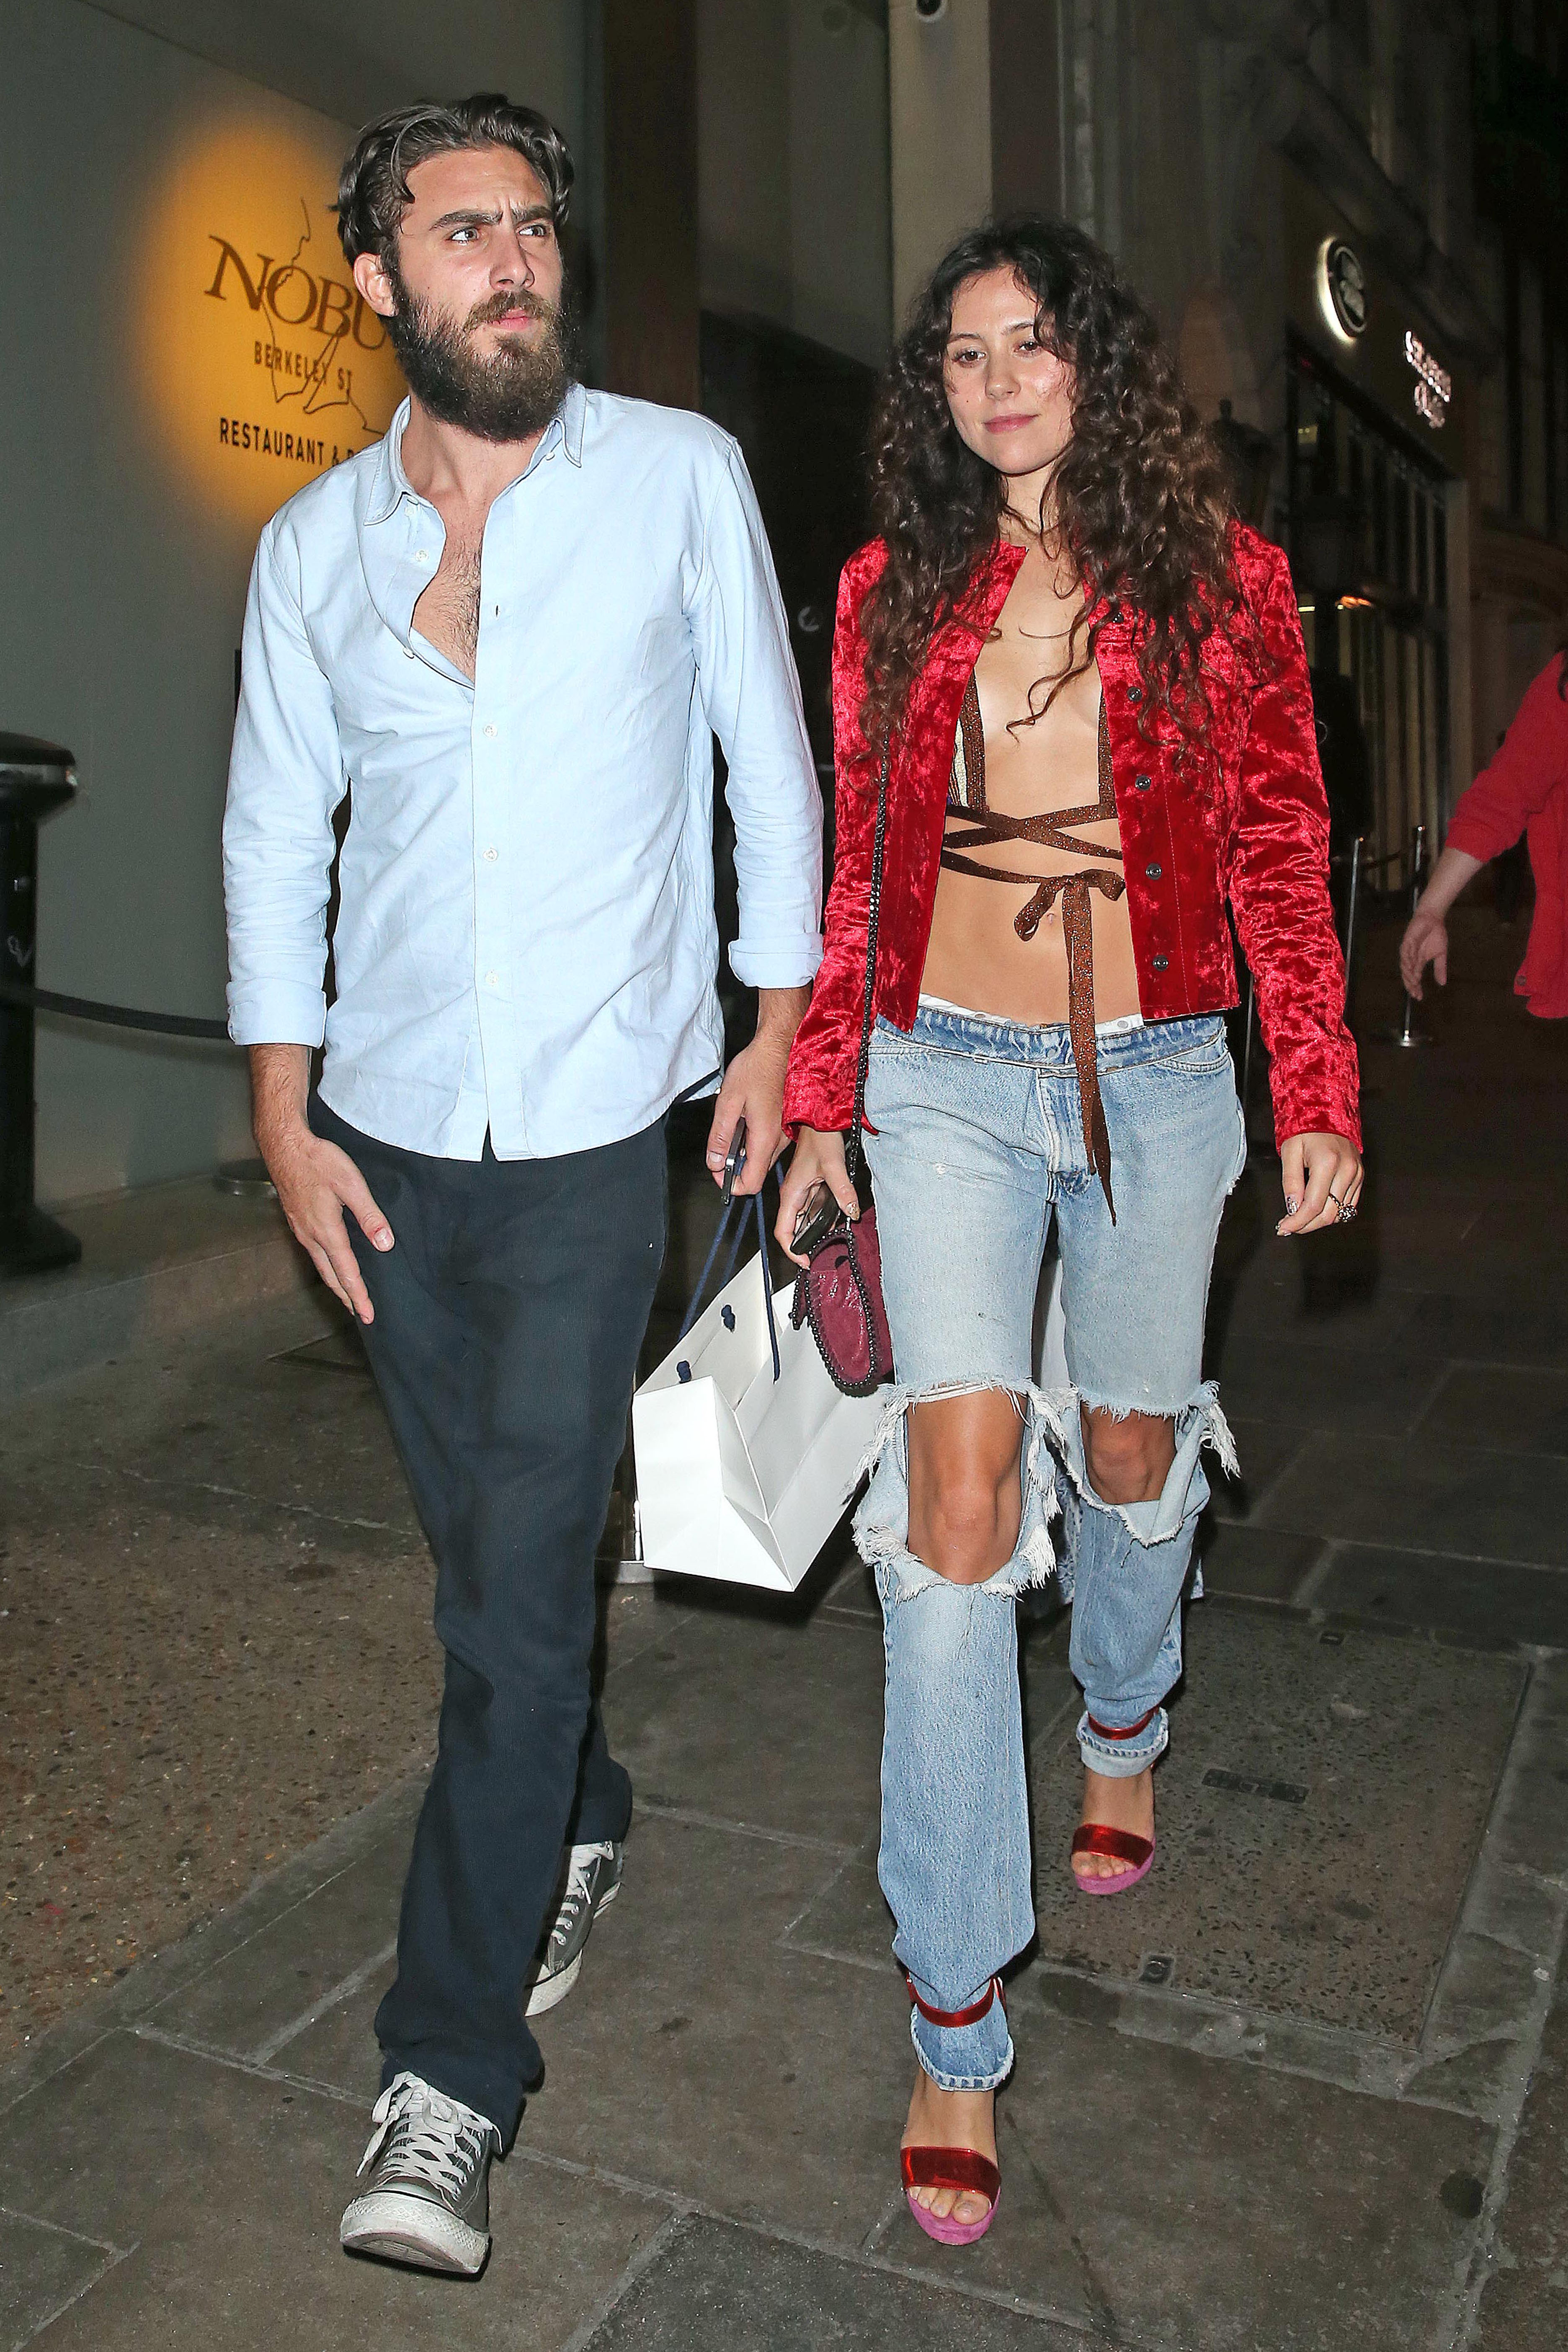 *EXCLUSIVE* Eliza Doolittle wears a revealing outfit with a new mystery man **USA ONLY**